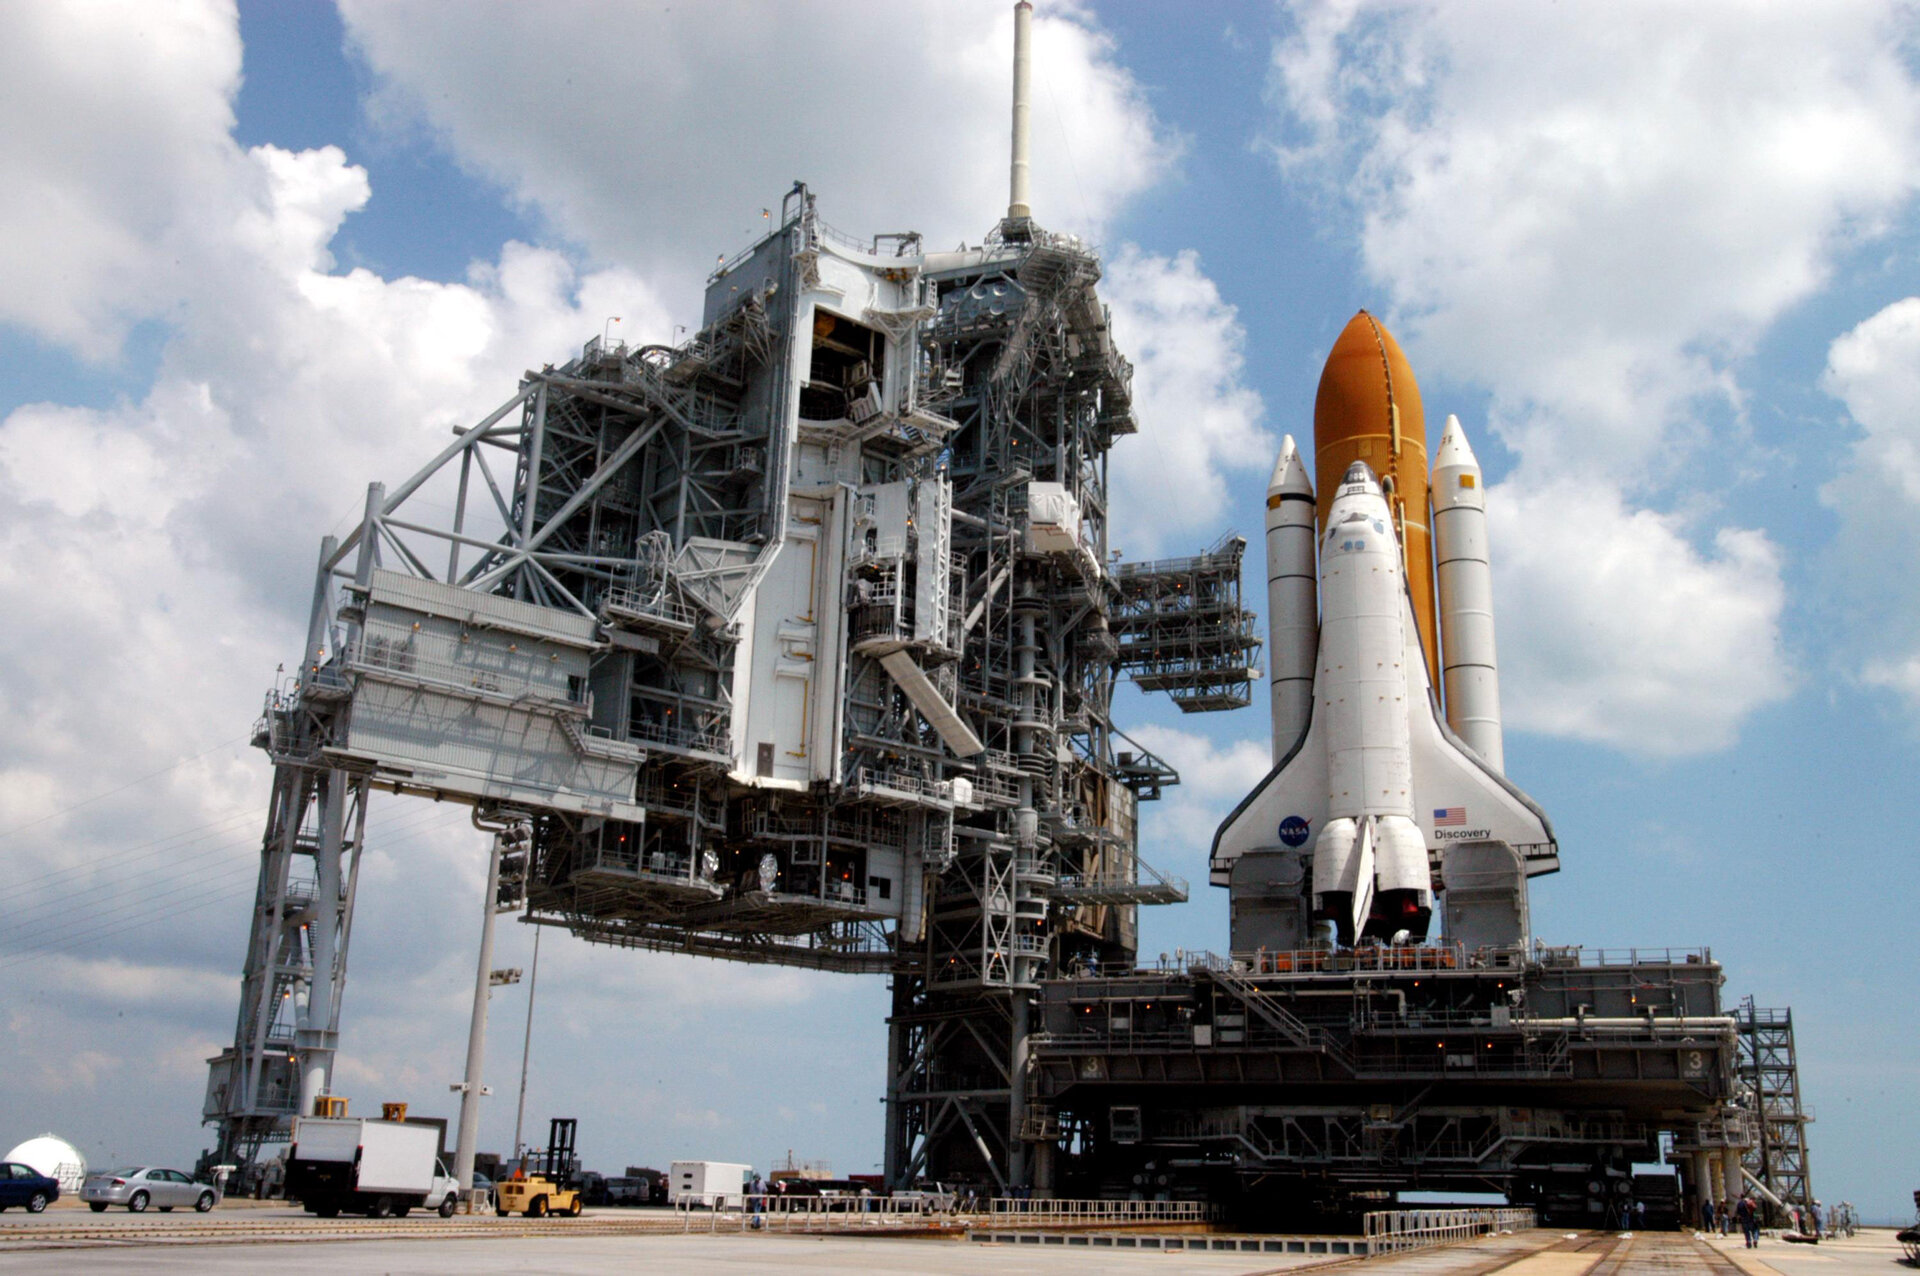 Astrolab launched with Space Shuttle Discovery